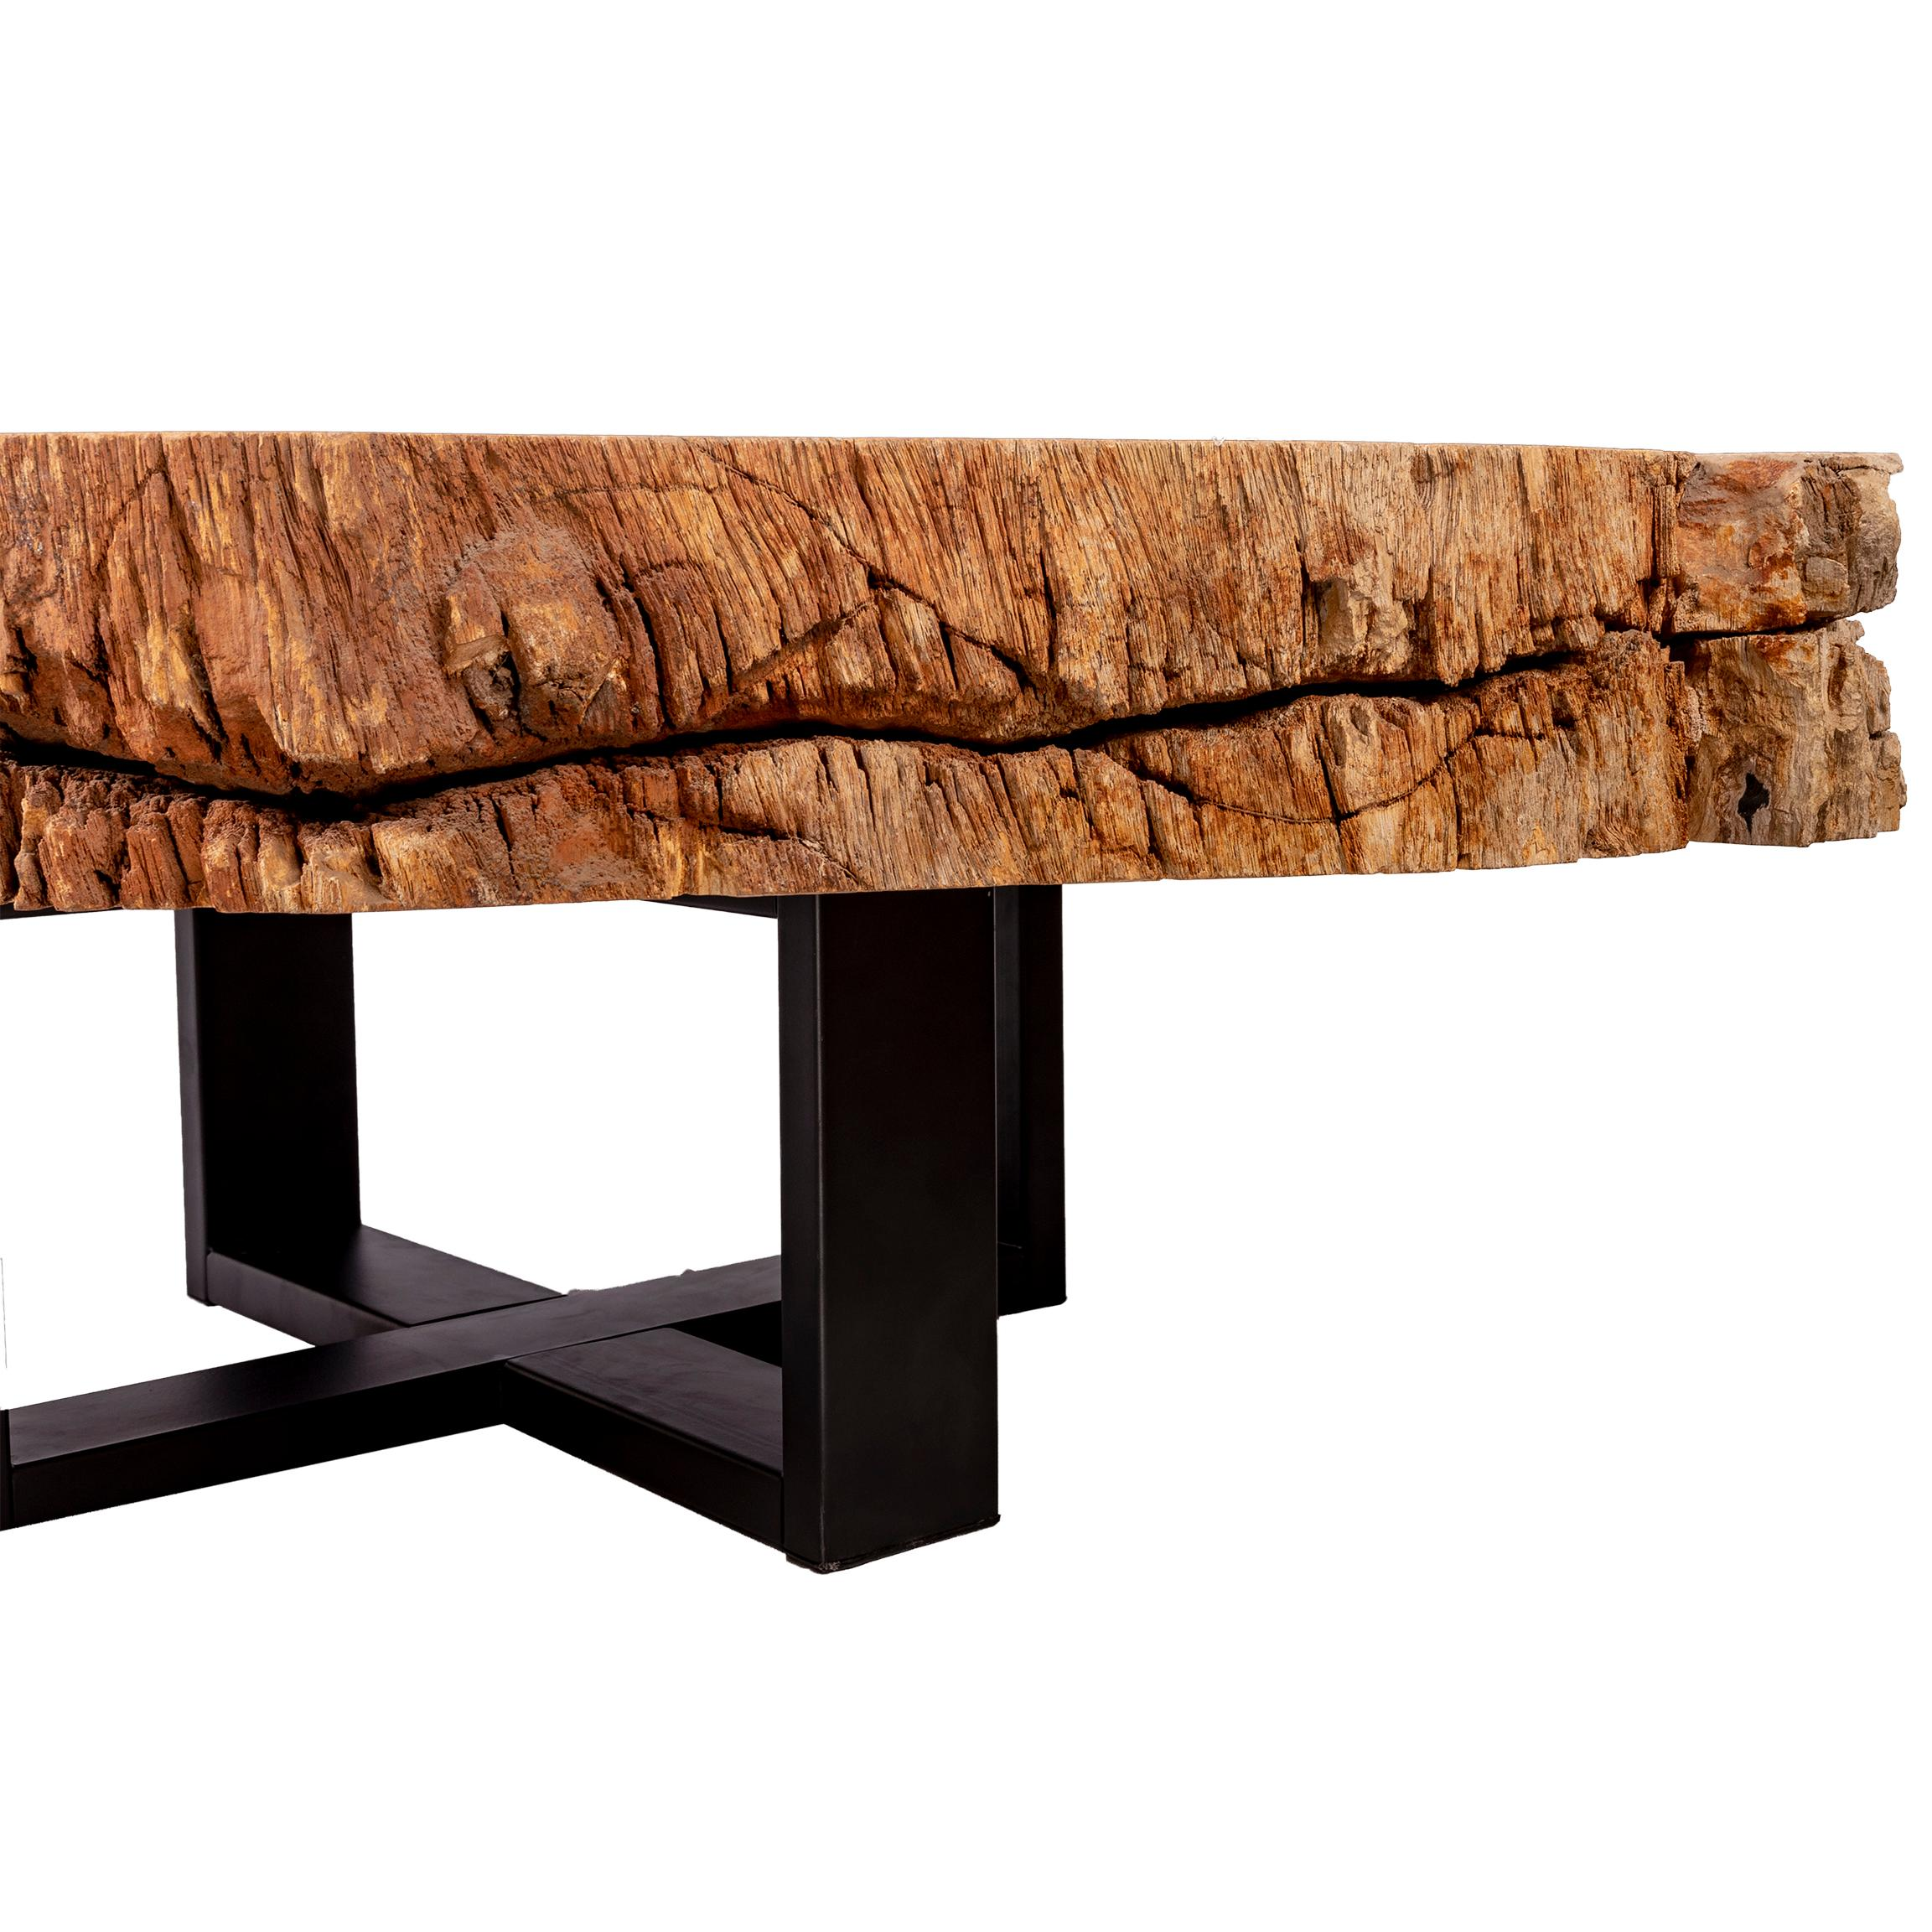 Phenomenal Center Of Coffee Table Natural Circular Shape Petrified Wood With Metal Base Download Free Architecture Designs Scobabritishbridgeorg